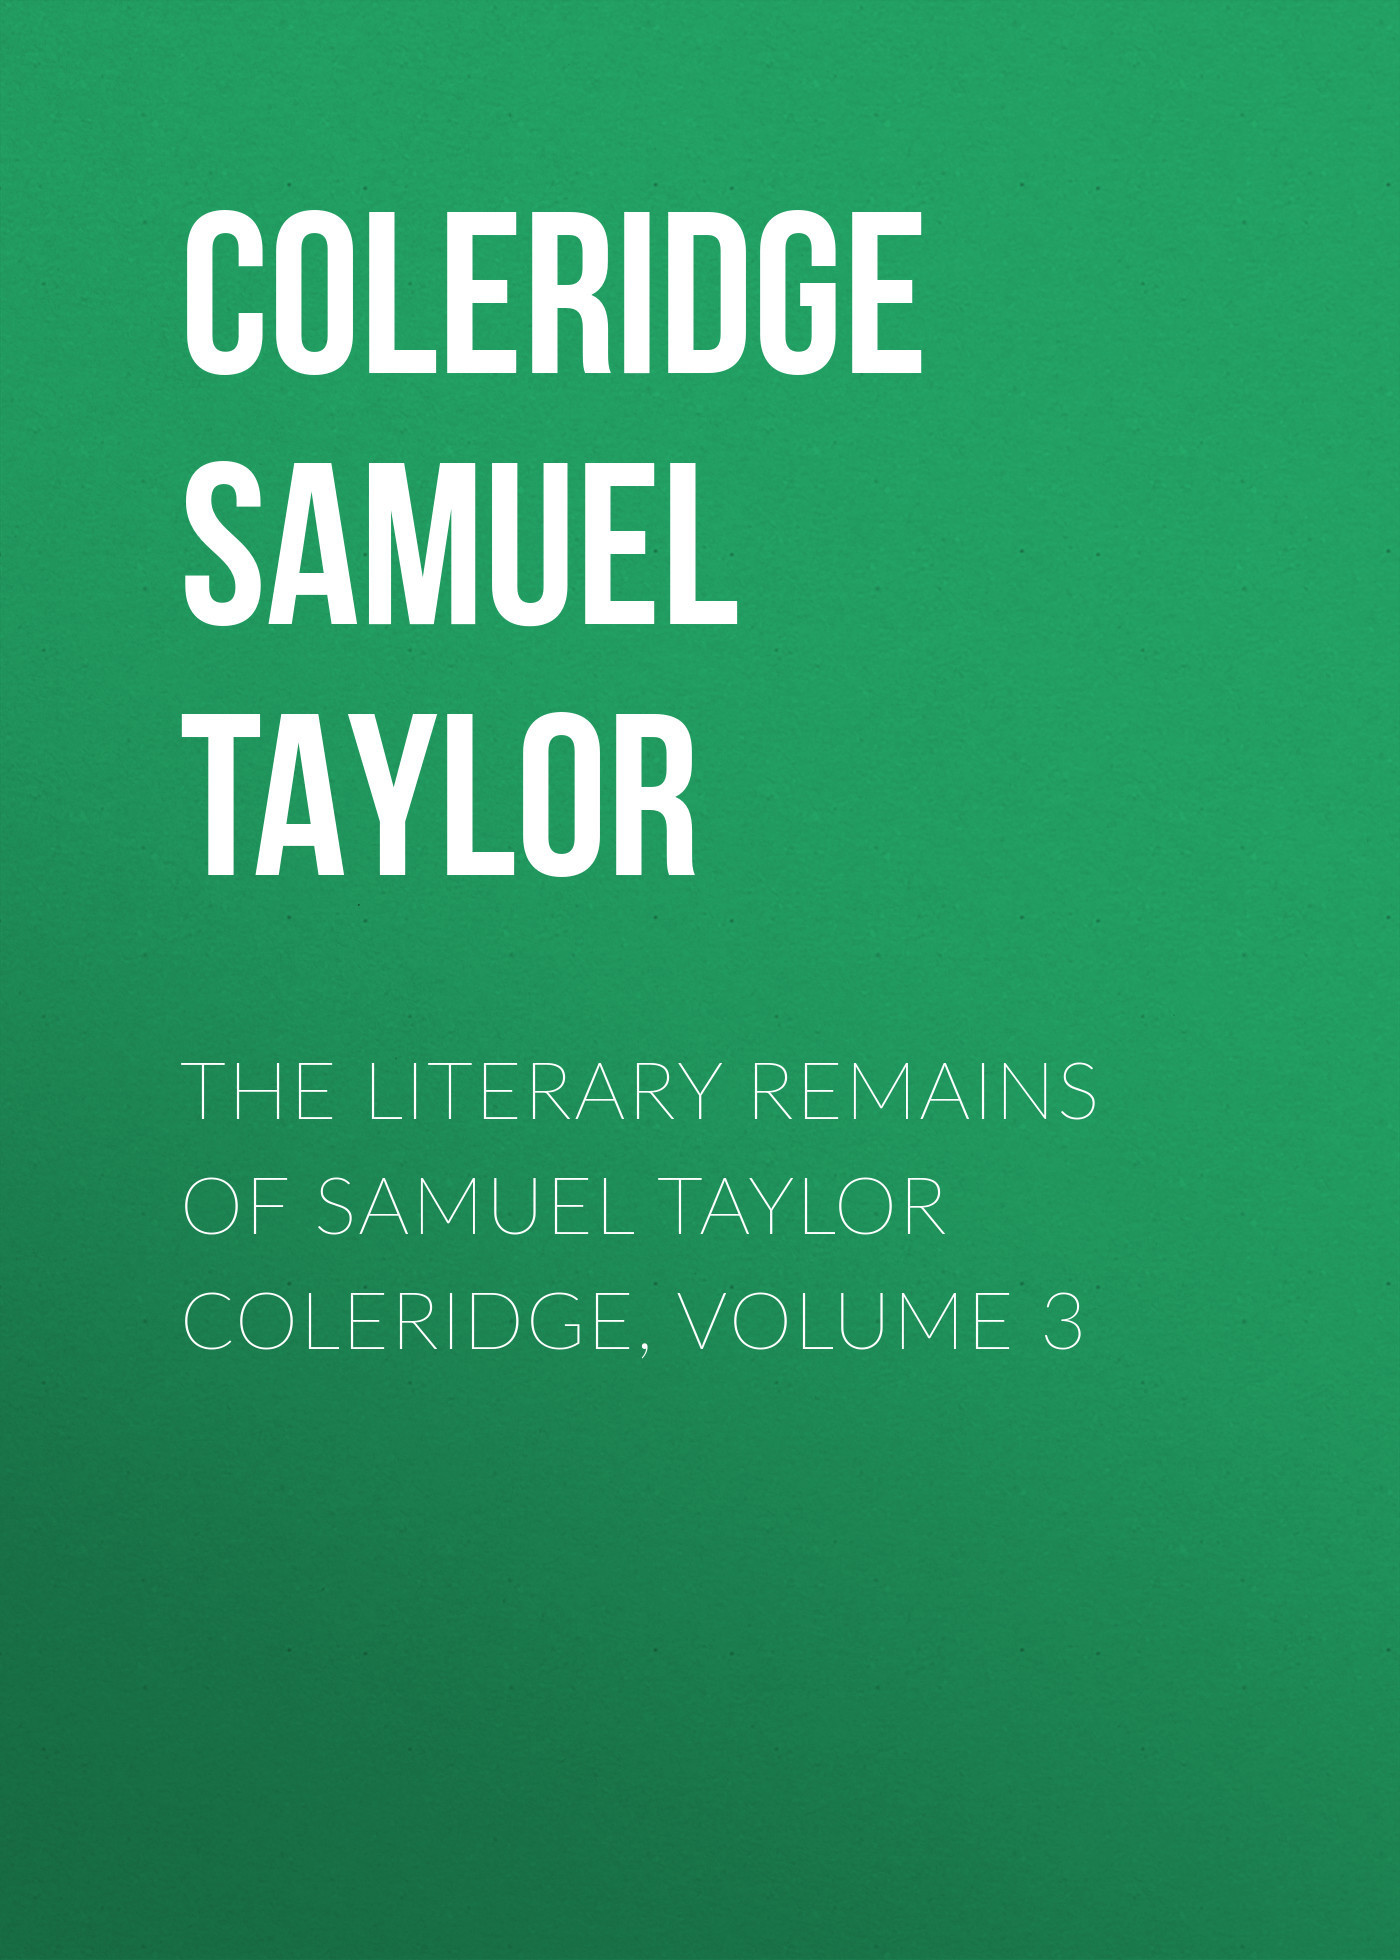 Coleridge Samuel Taylor The Literary Remains of Samuel Taylor Coleridge, Volume 3 sir samuel samuel sir vize pli o